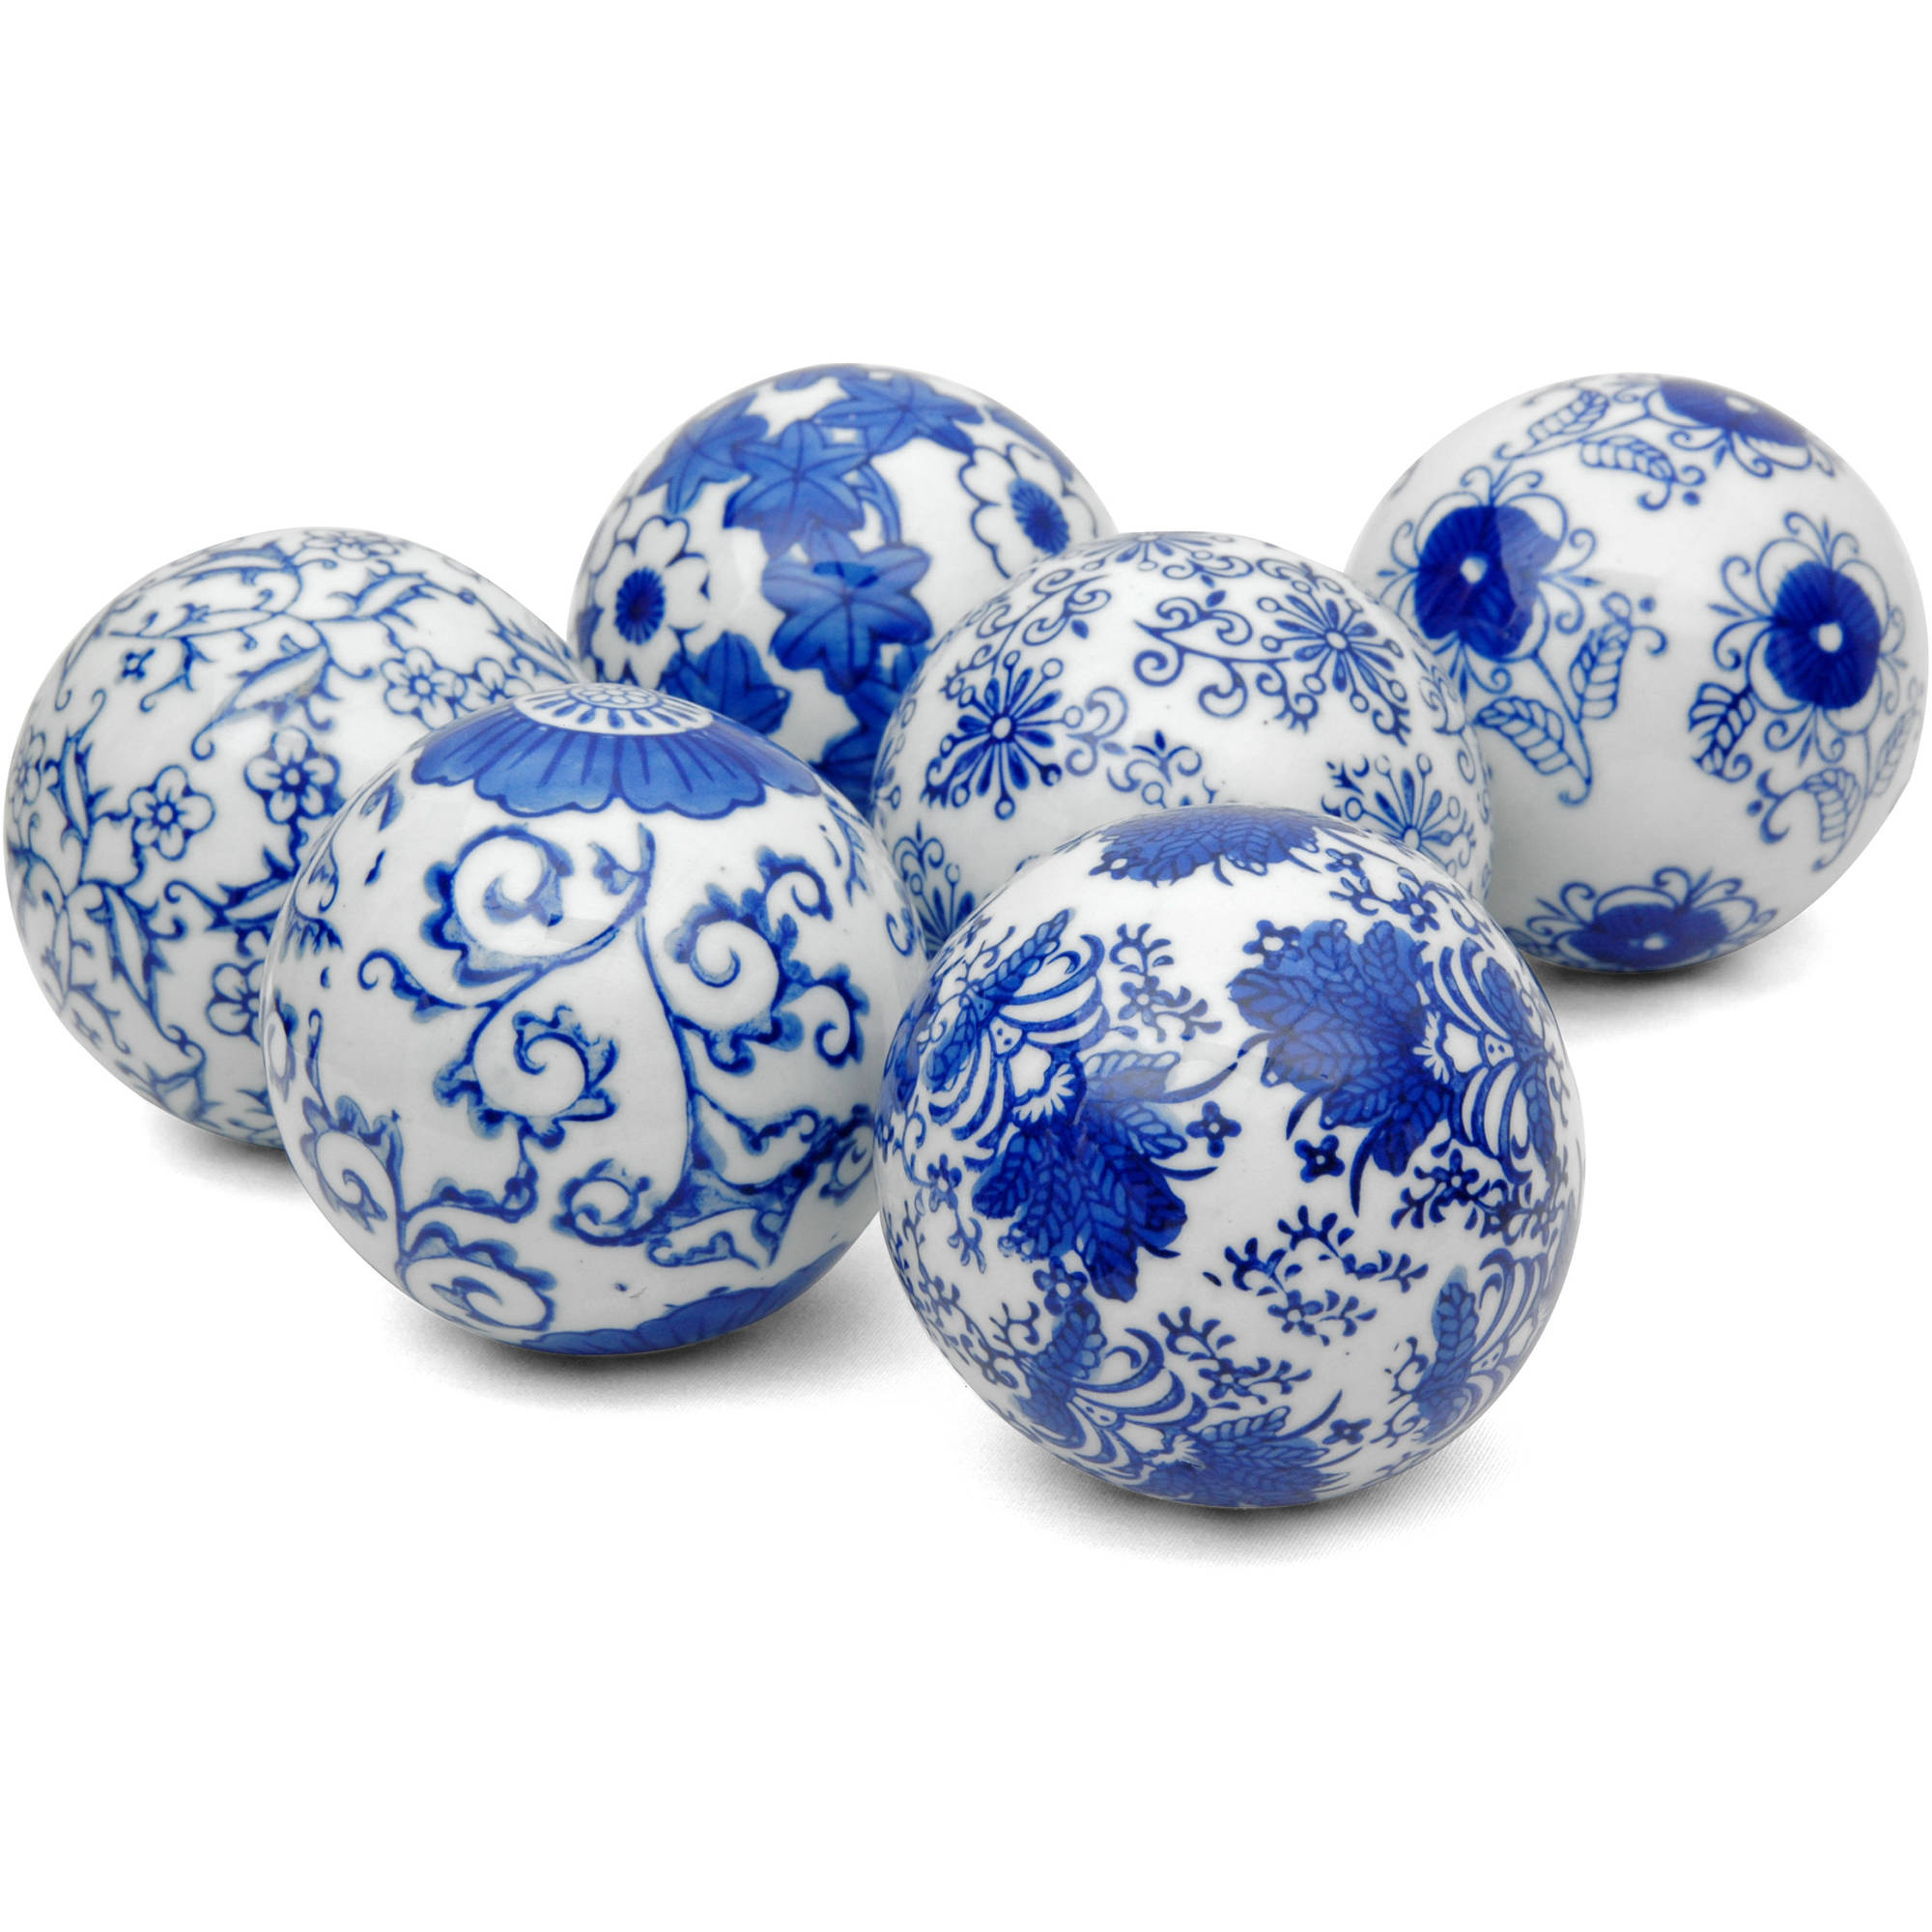 "3"" Blue & White Decorative Porcelain Ball Set, B"